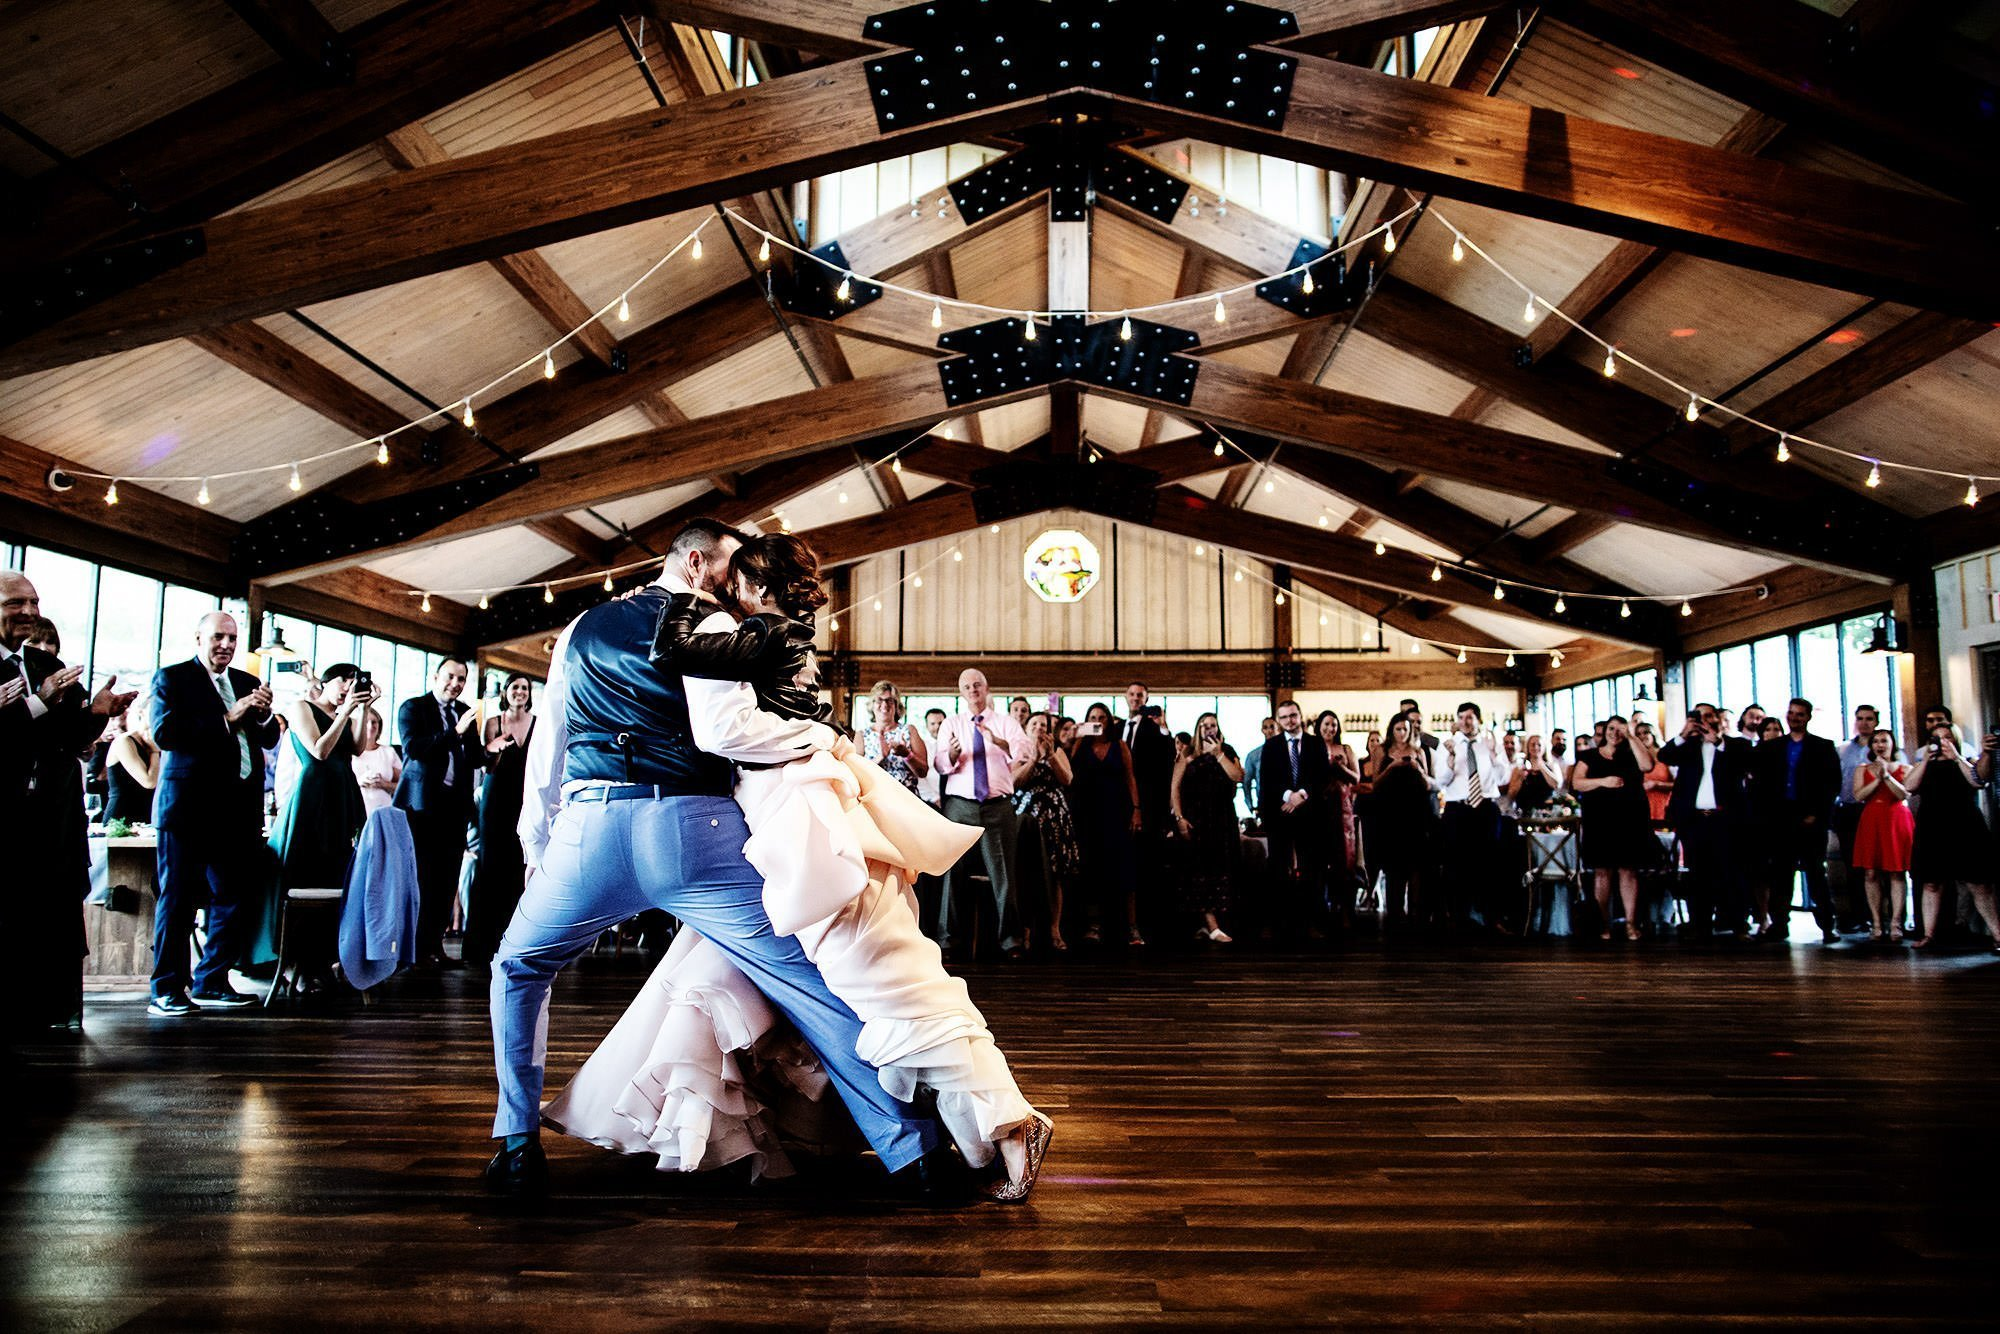 Red Maple Vineyard Wedding  I  The couple share their first dance in the barn of Red Maple Vineyard in Upstate New York.